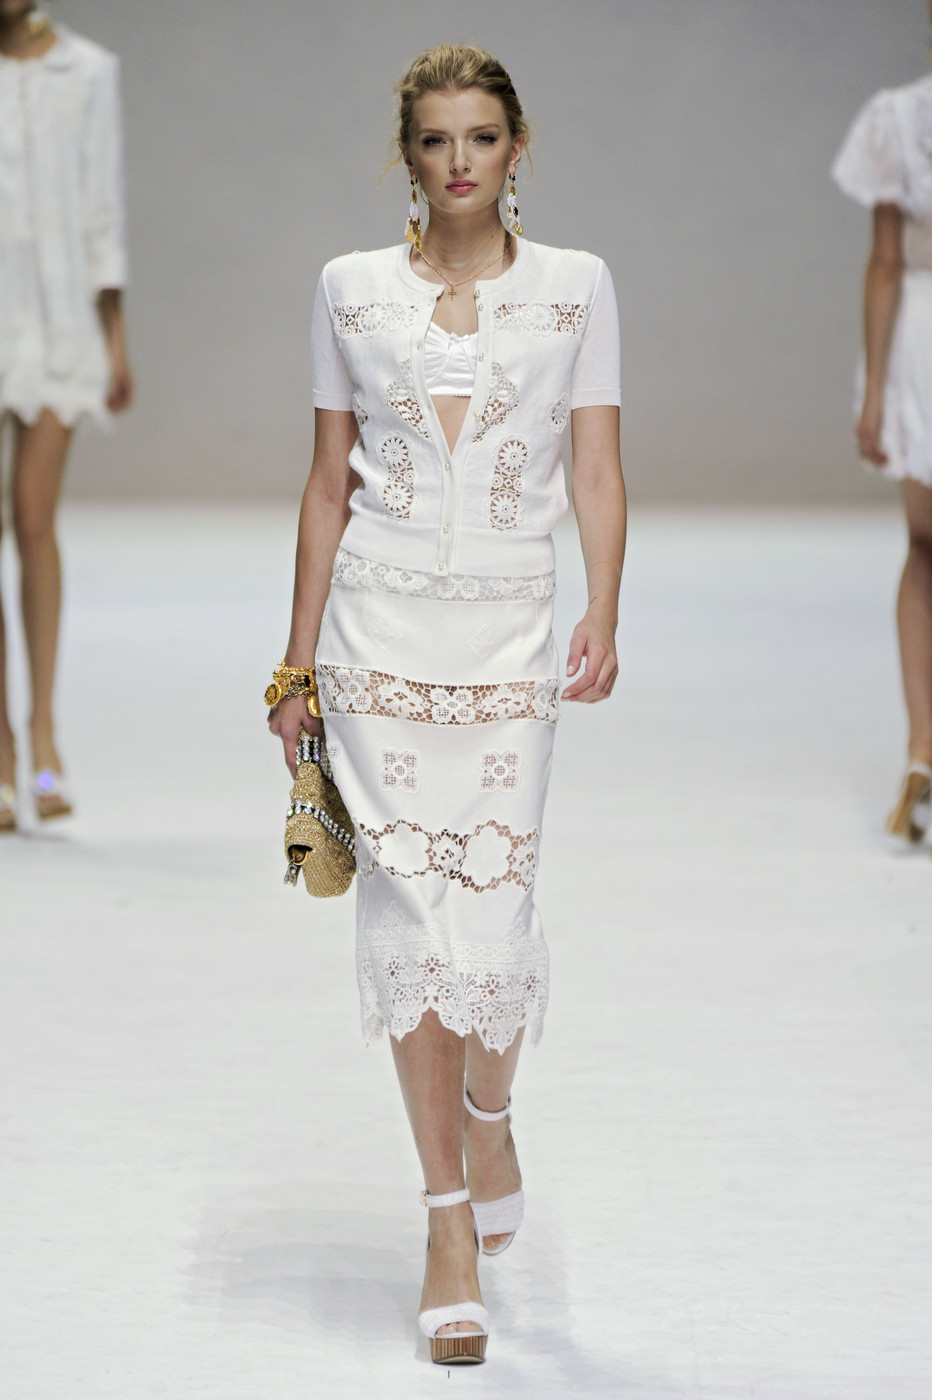 via fashioned by love | Dolce & Gabbana Spring/Summer 2011 White